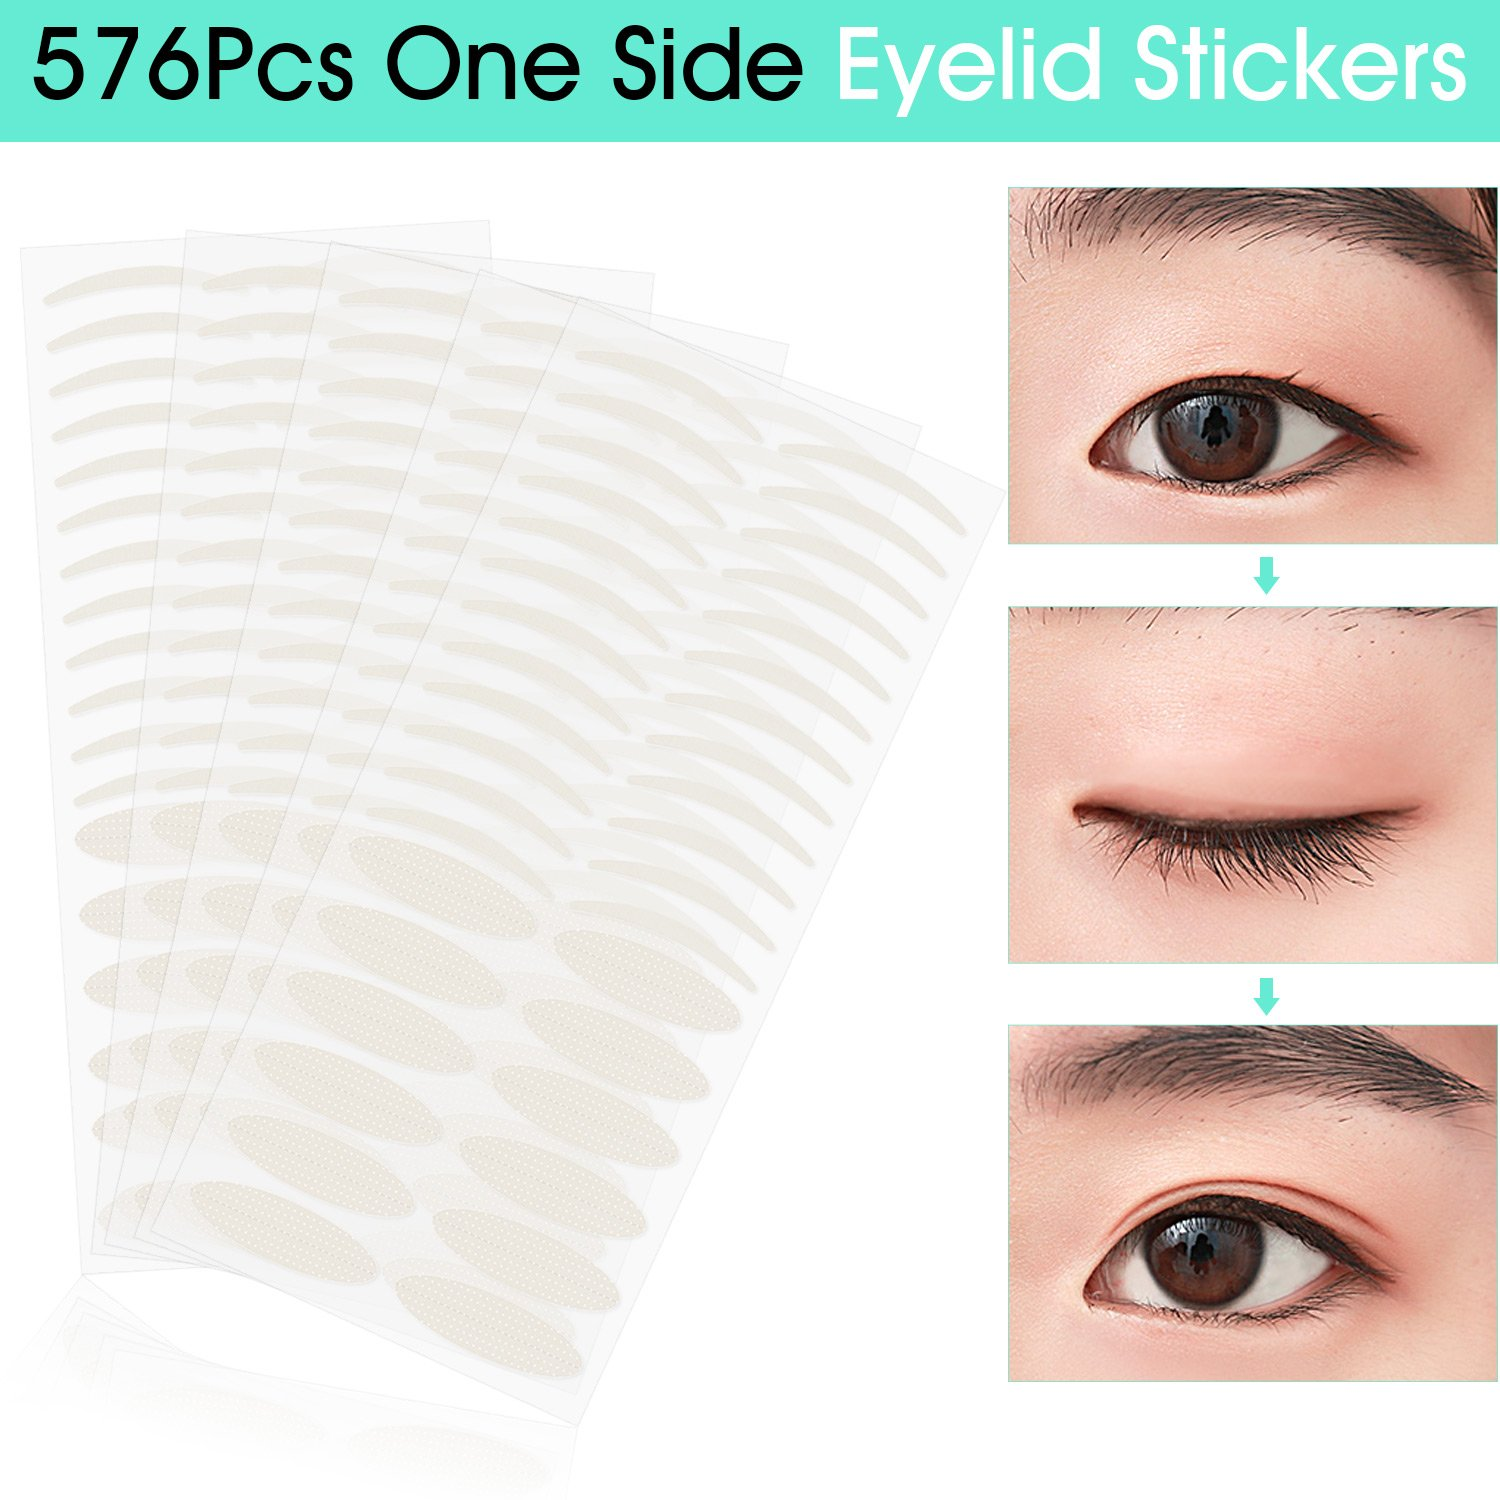 288 Pairs Invisible Fiber One Side Eyelid Tapes Stickers - Instant Eyelid Lift Without Surgery, Perfect for hooded, droopy, uneven, or mono-eyelids (144 Pairs Slim and 144 Pairs Wide) Pormasbenzer